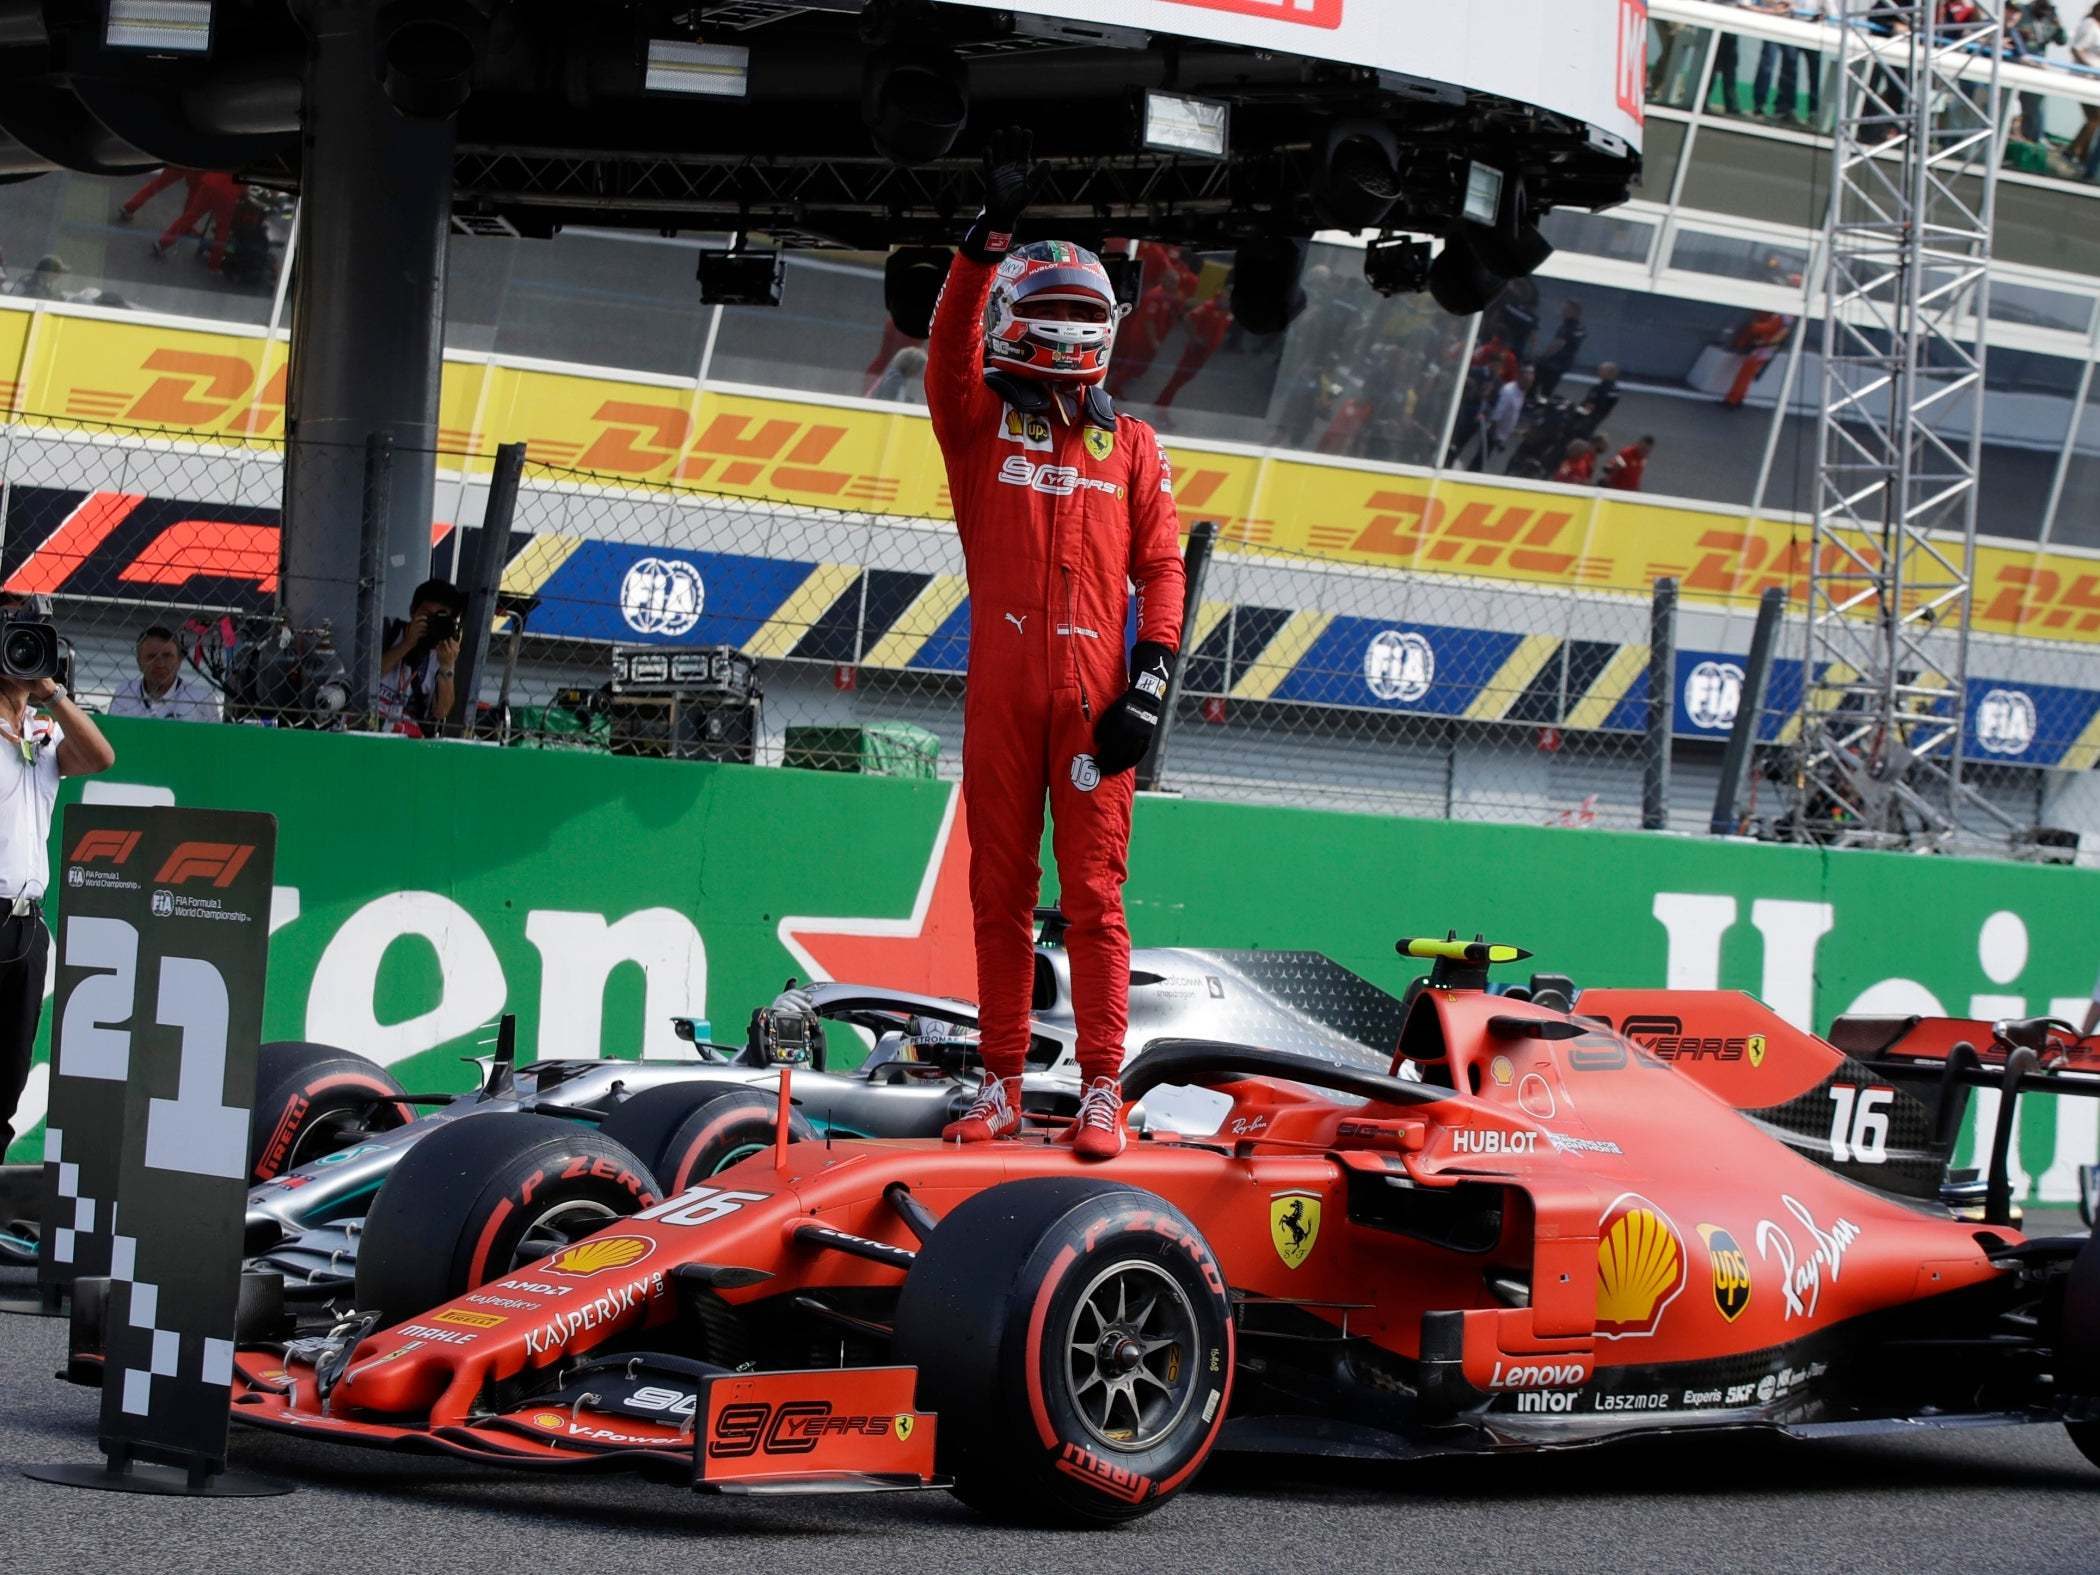 Italian Grand Prix Qualifying Charles Leclerc Takes Pole Position In Farcical Circumstances At Monza The Independent The Independent